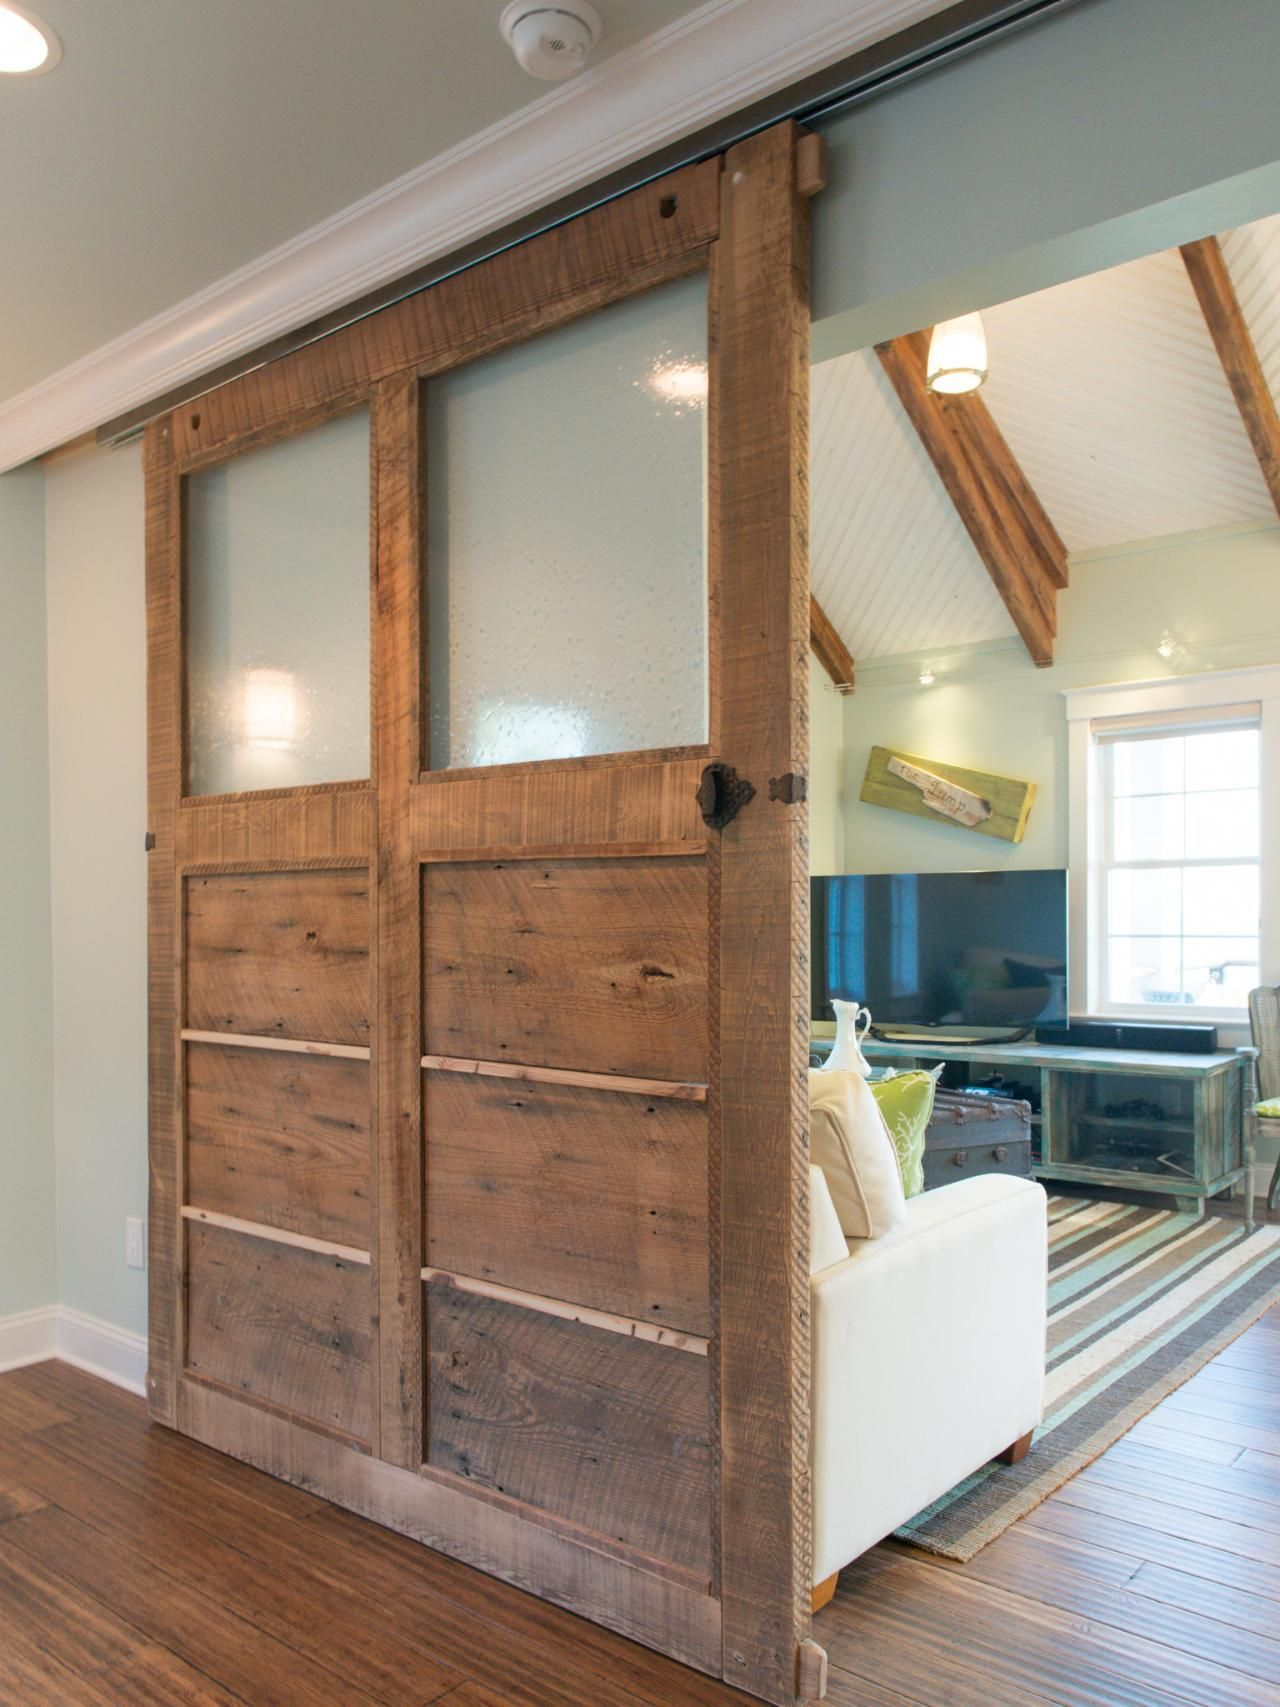 Costruire Una Porta Di Legno.How To Build A Reclaimed Wood Sliding Door Casa Fai Da Te Idee